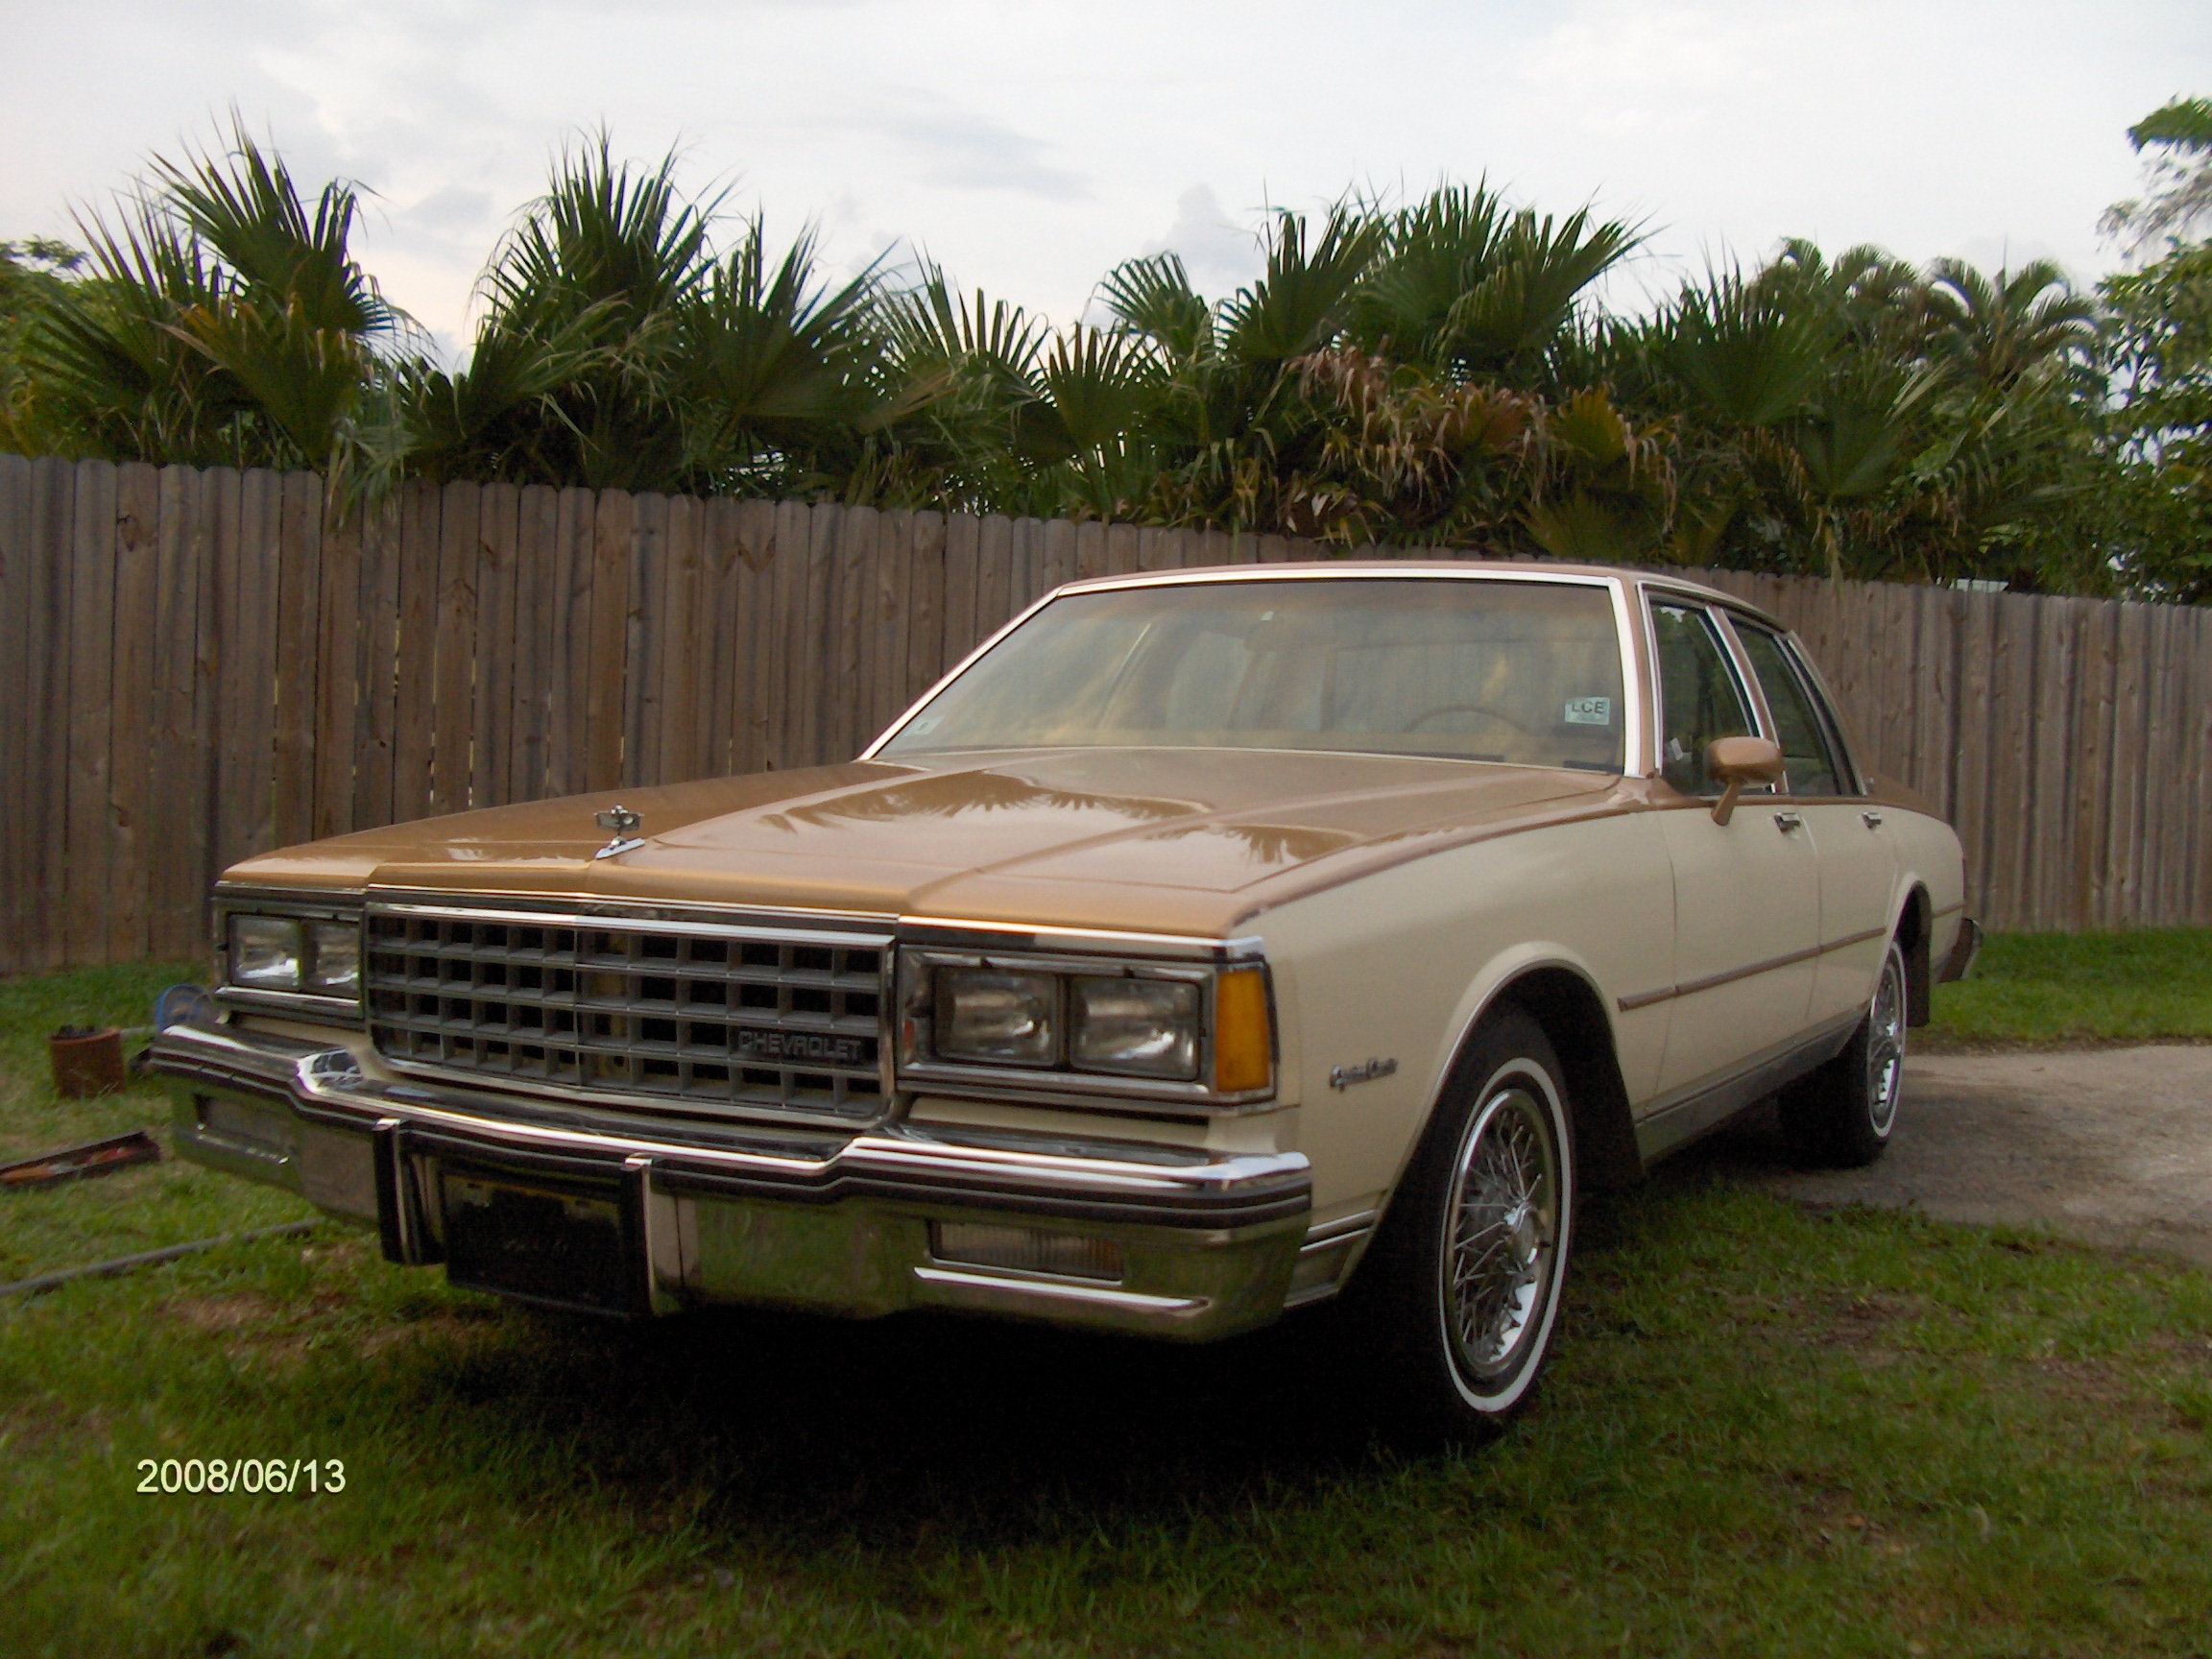 My Curbside Classic: 1980 Chevrolet Caprice Classic – It's The NEW Chevrolet